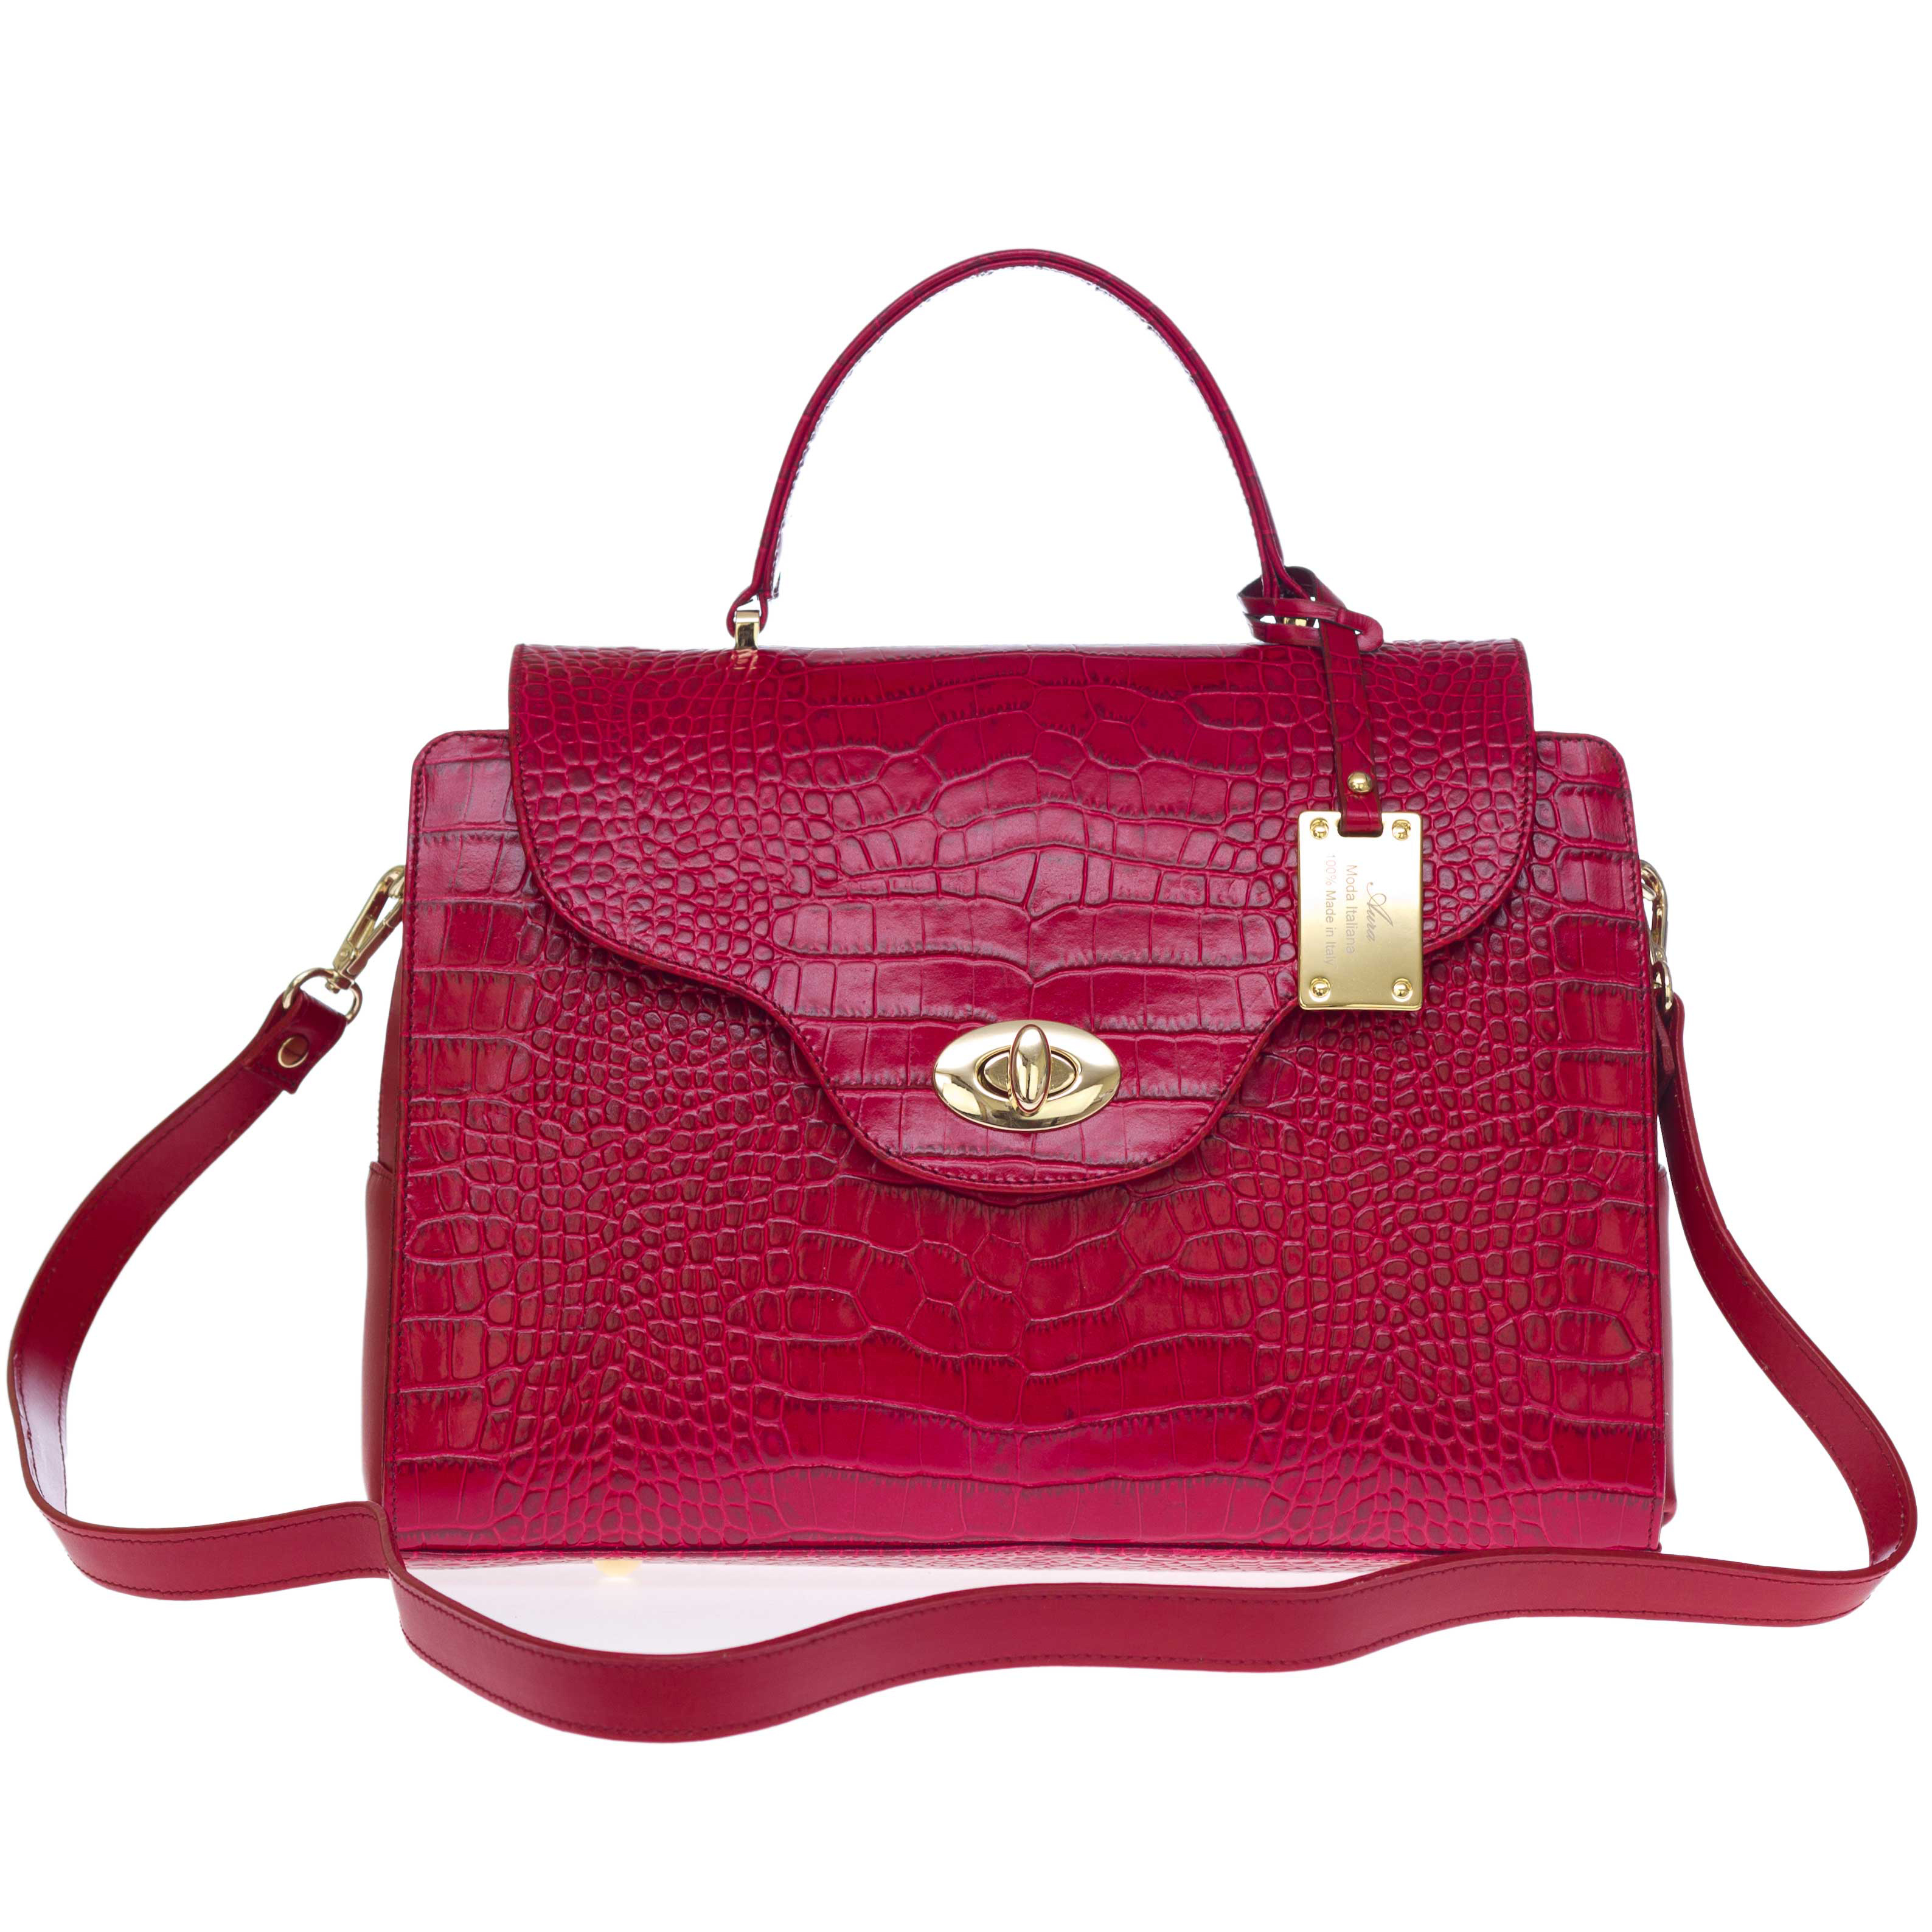 AURA Italian Made Red Crocodile Embossed Leather Medium Tote Handbag